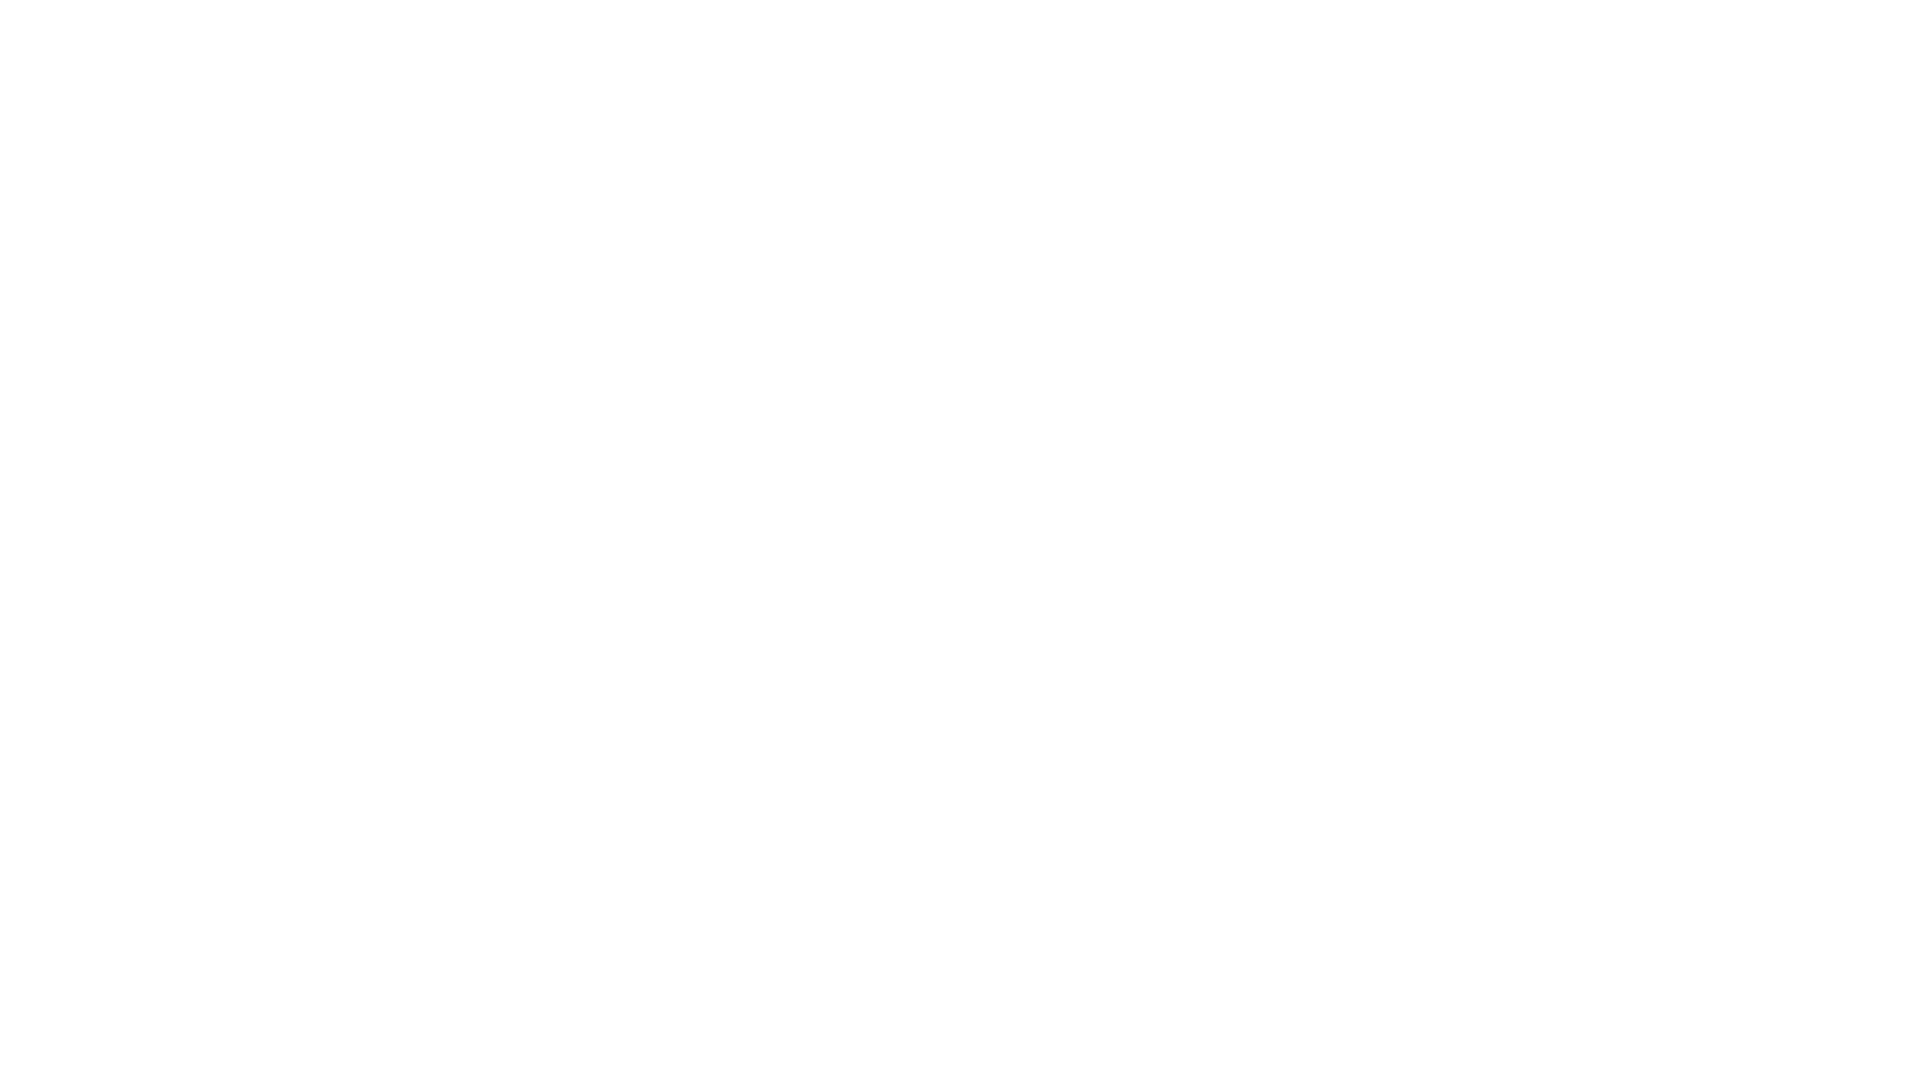 Capacity Central America & Andean 2019